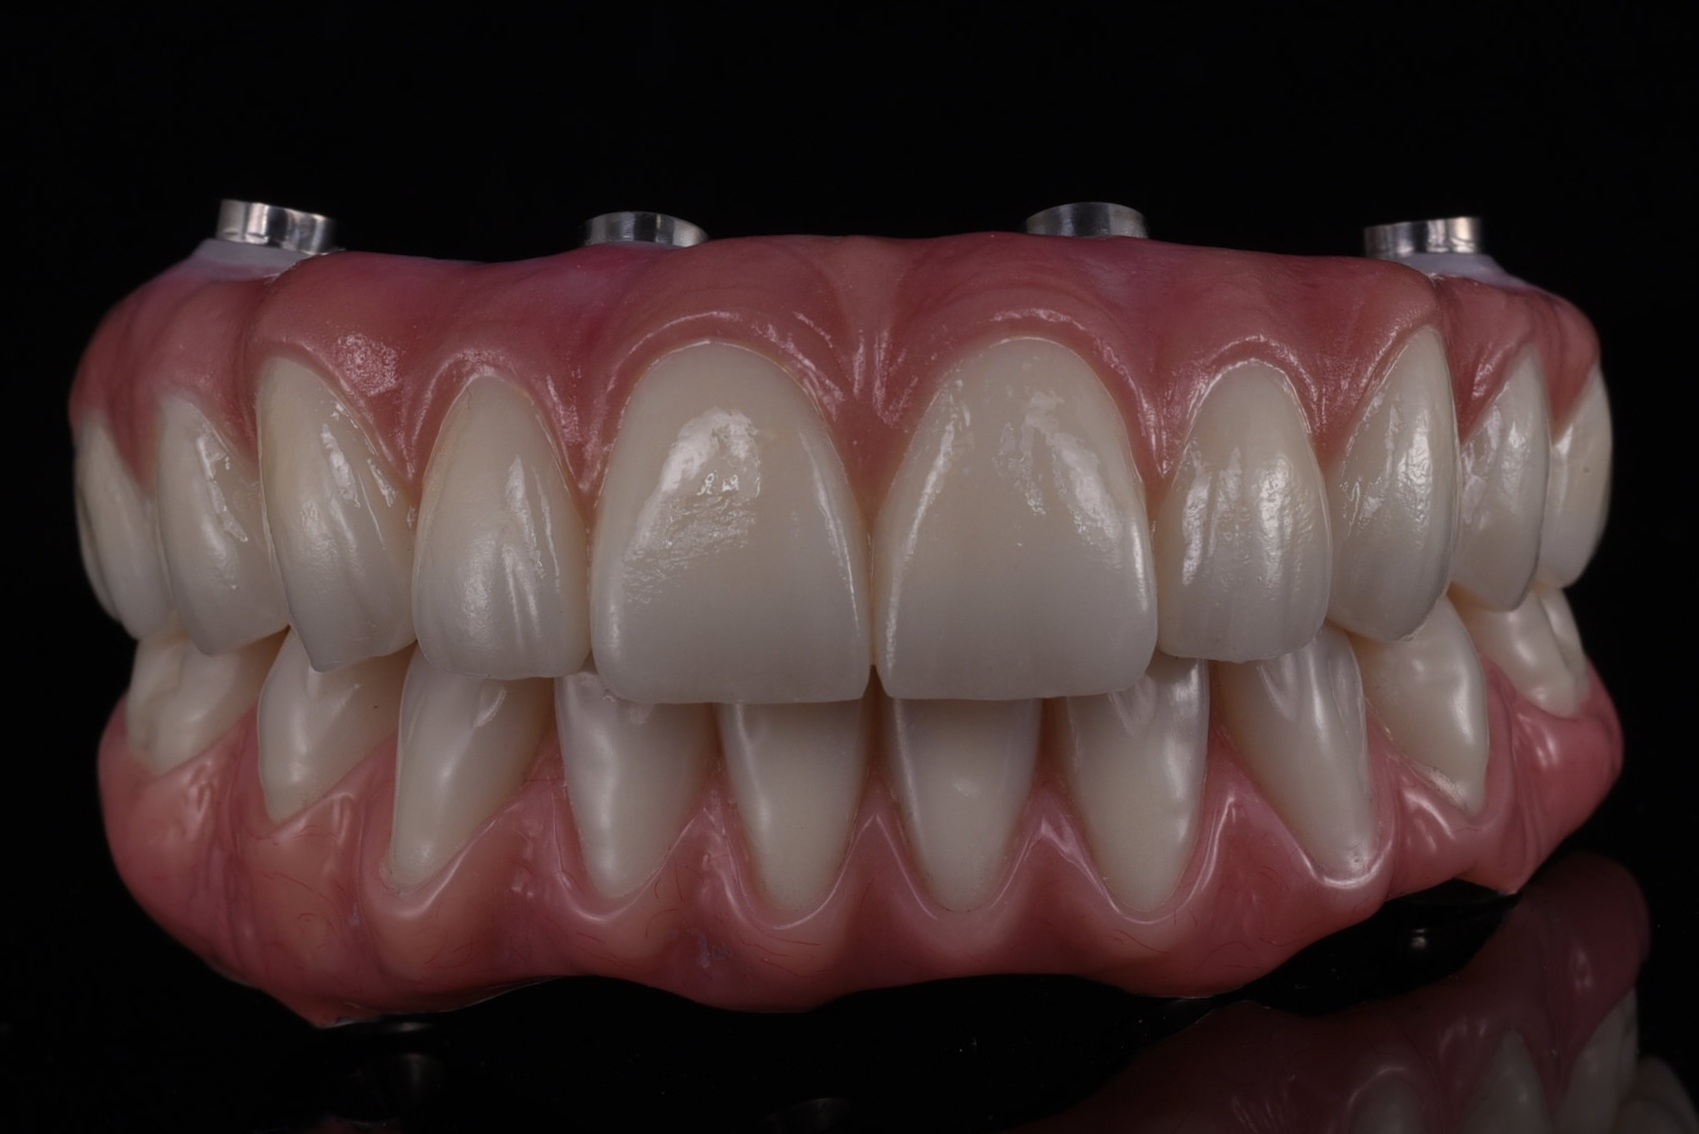 Upper Zirconia and lower conventional acrylic prostheses